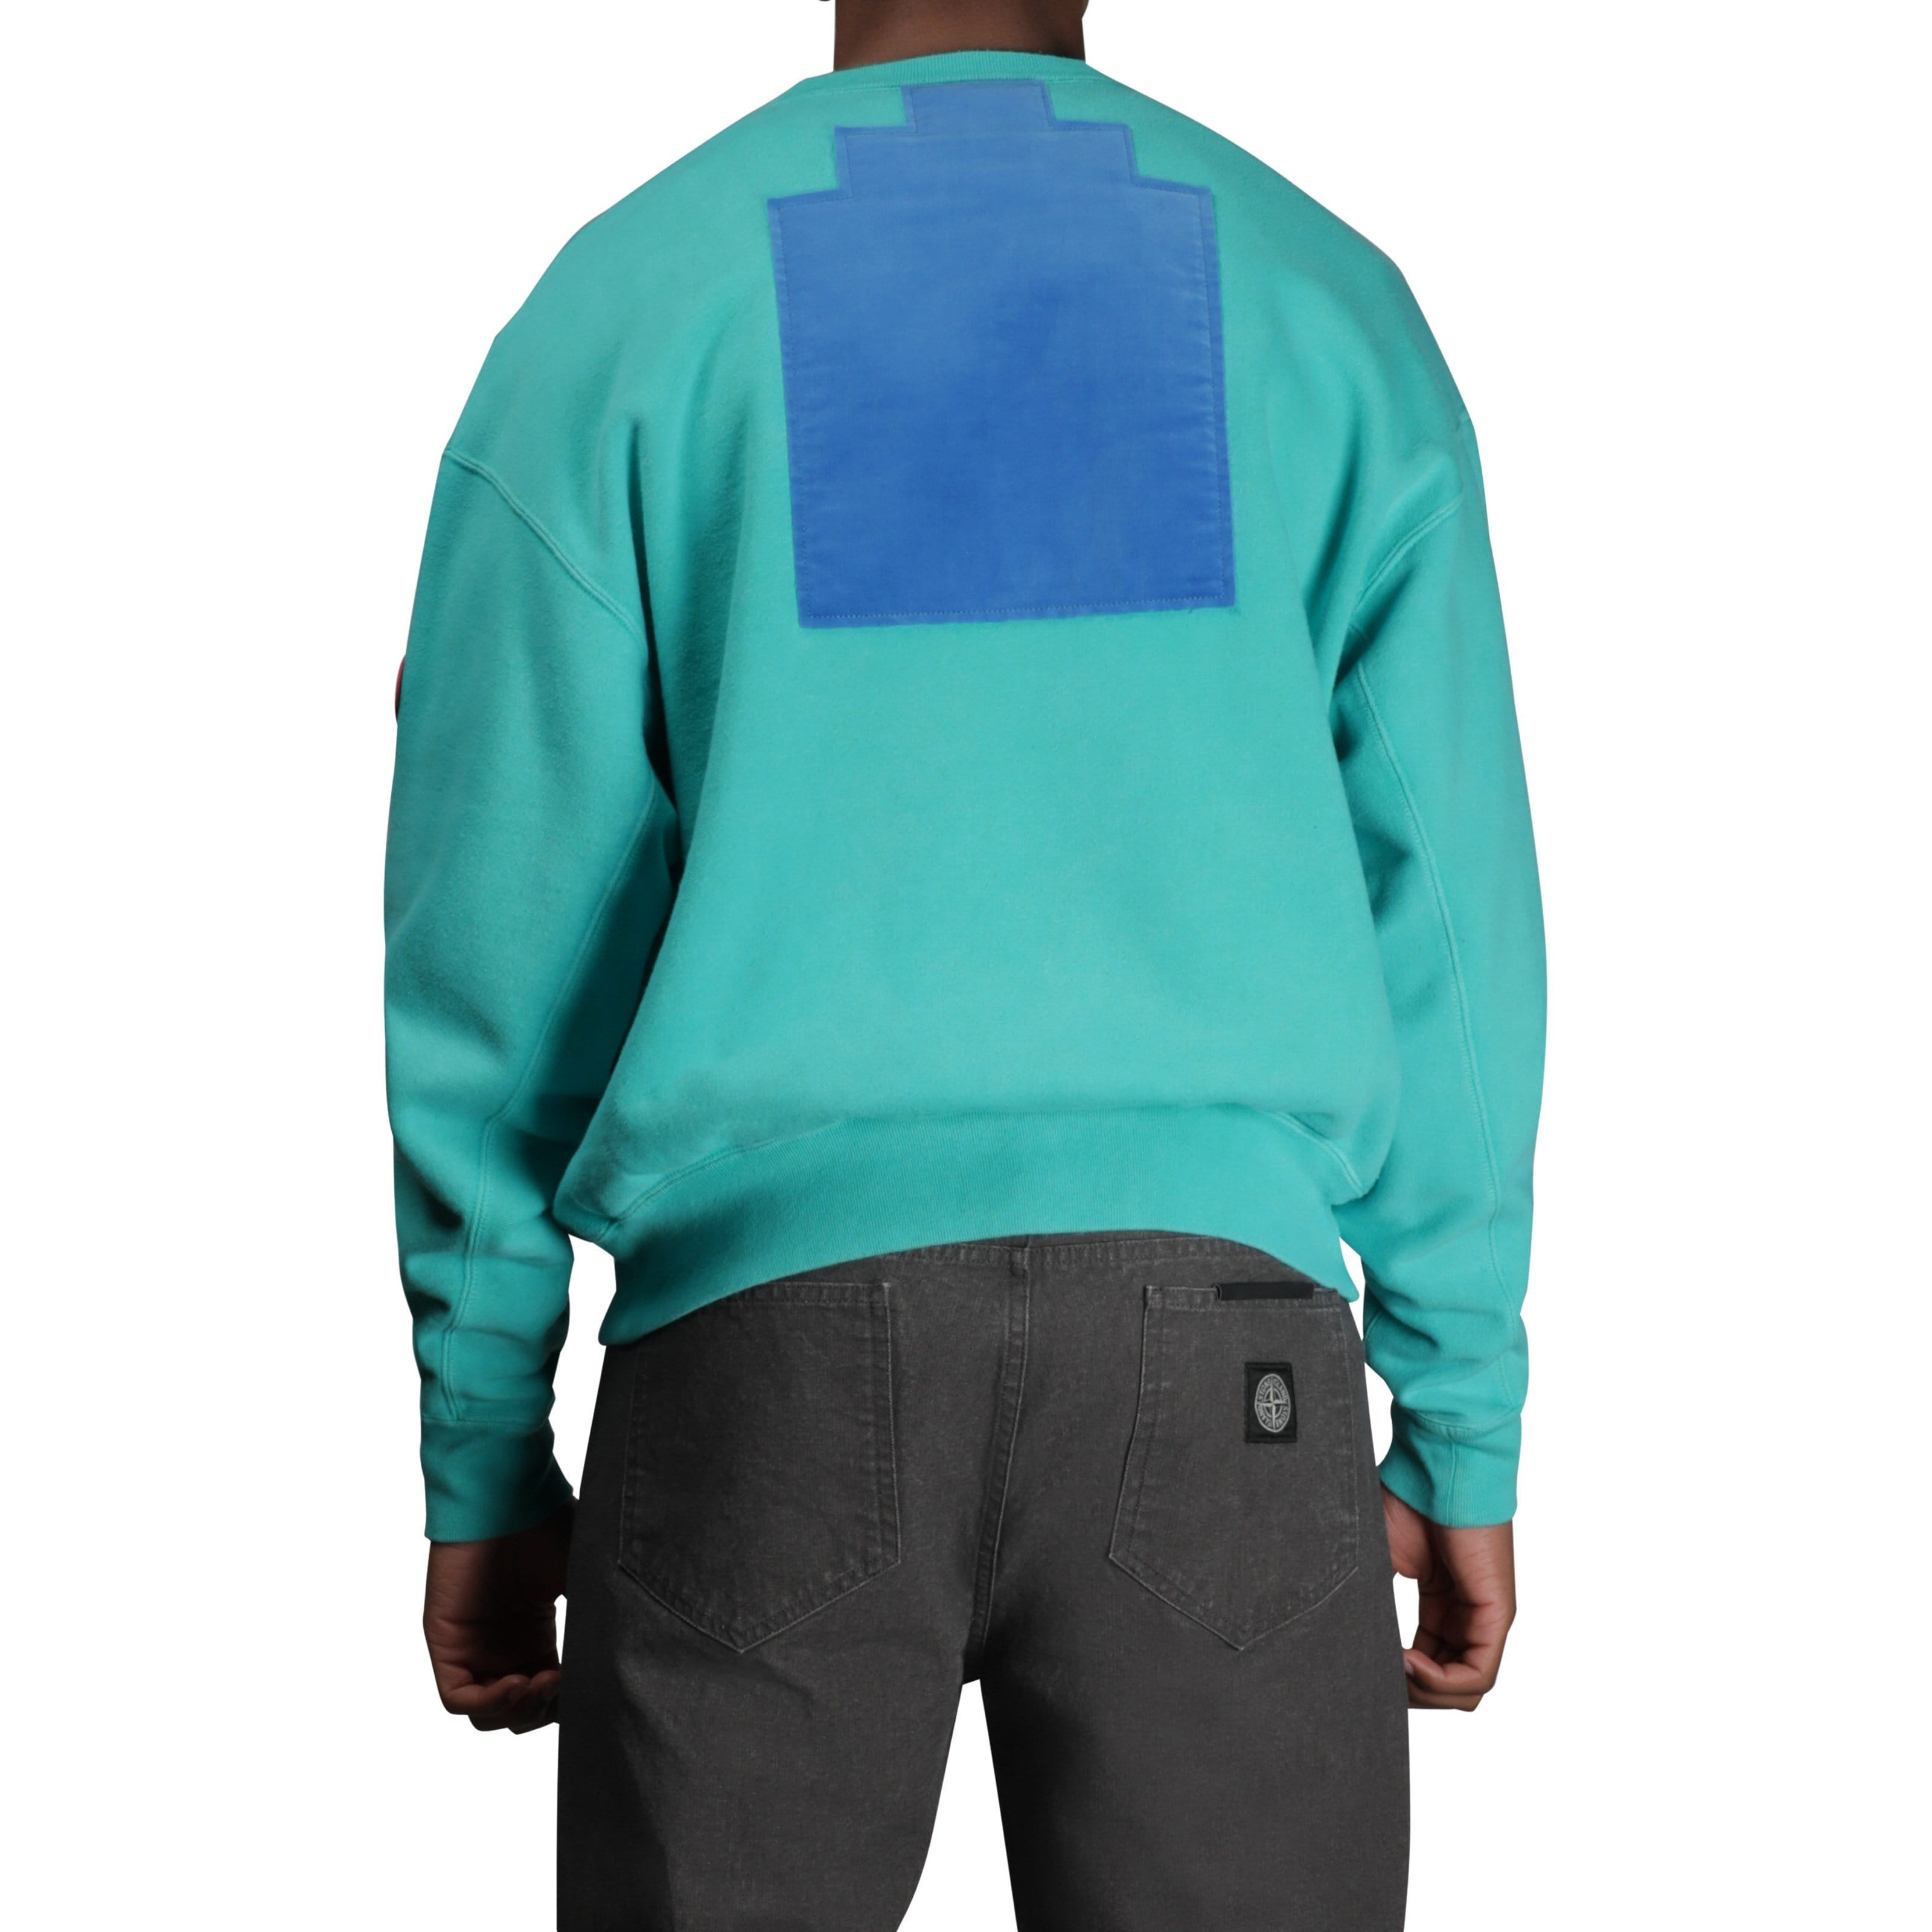 Cav Empt Hoodies & Sweatshirts AS MACHINE CREW NECK